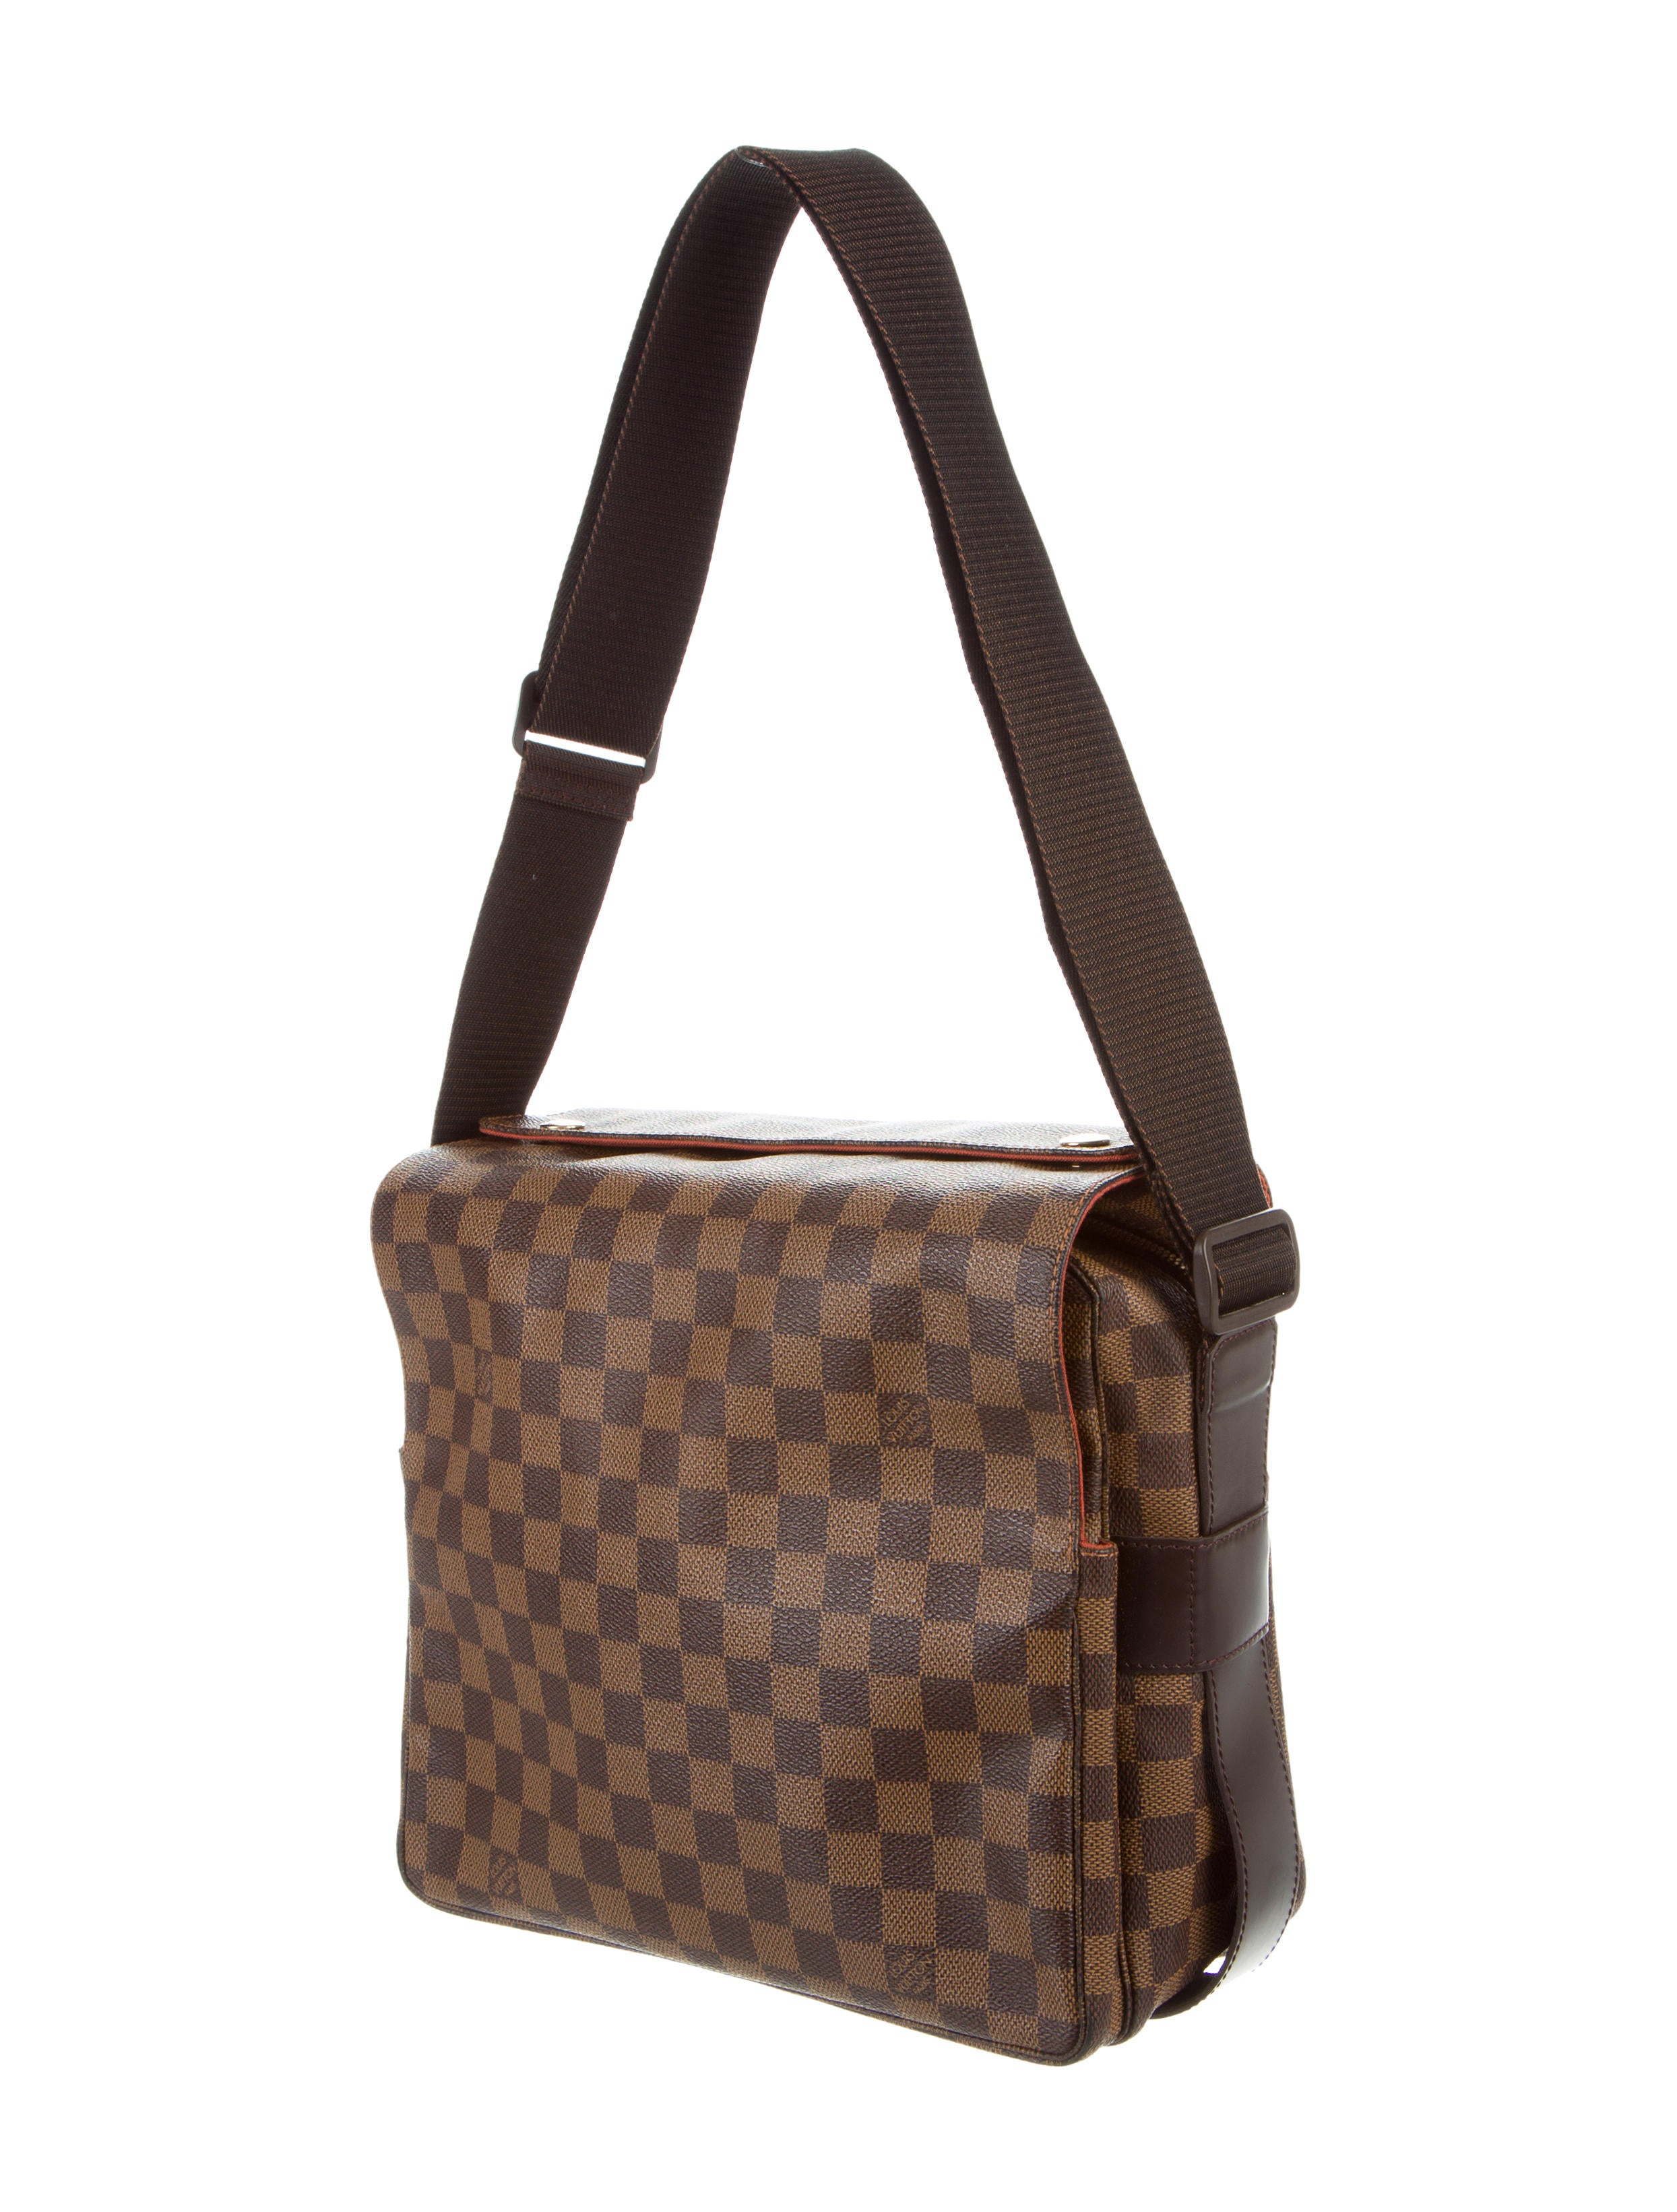 Innovative Louis Vuitton Abbesses Messenger Bag - Bags - LOU64324 | The RealReal